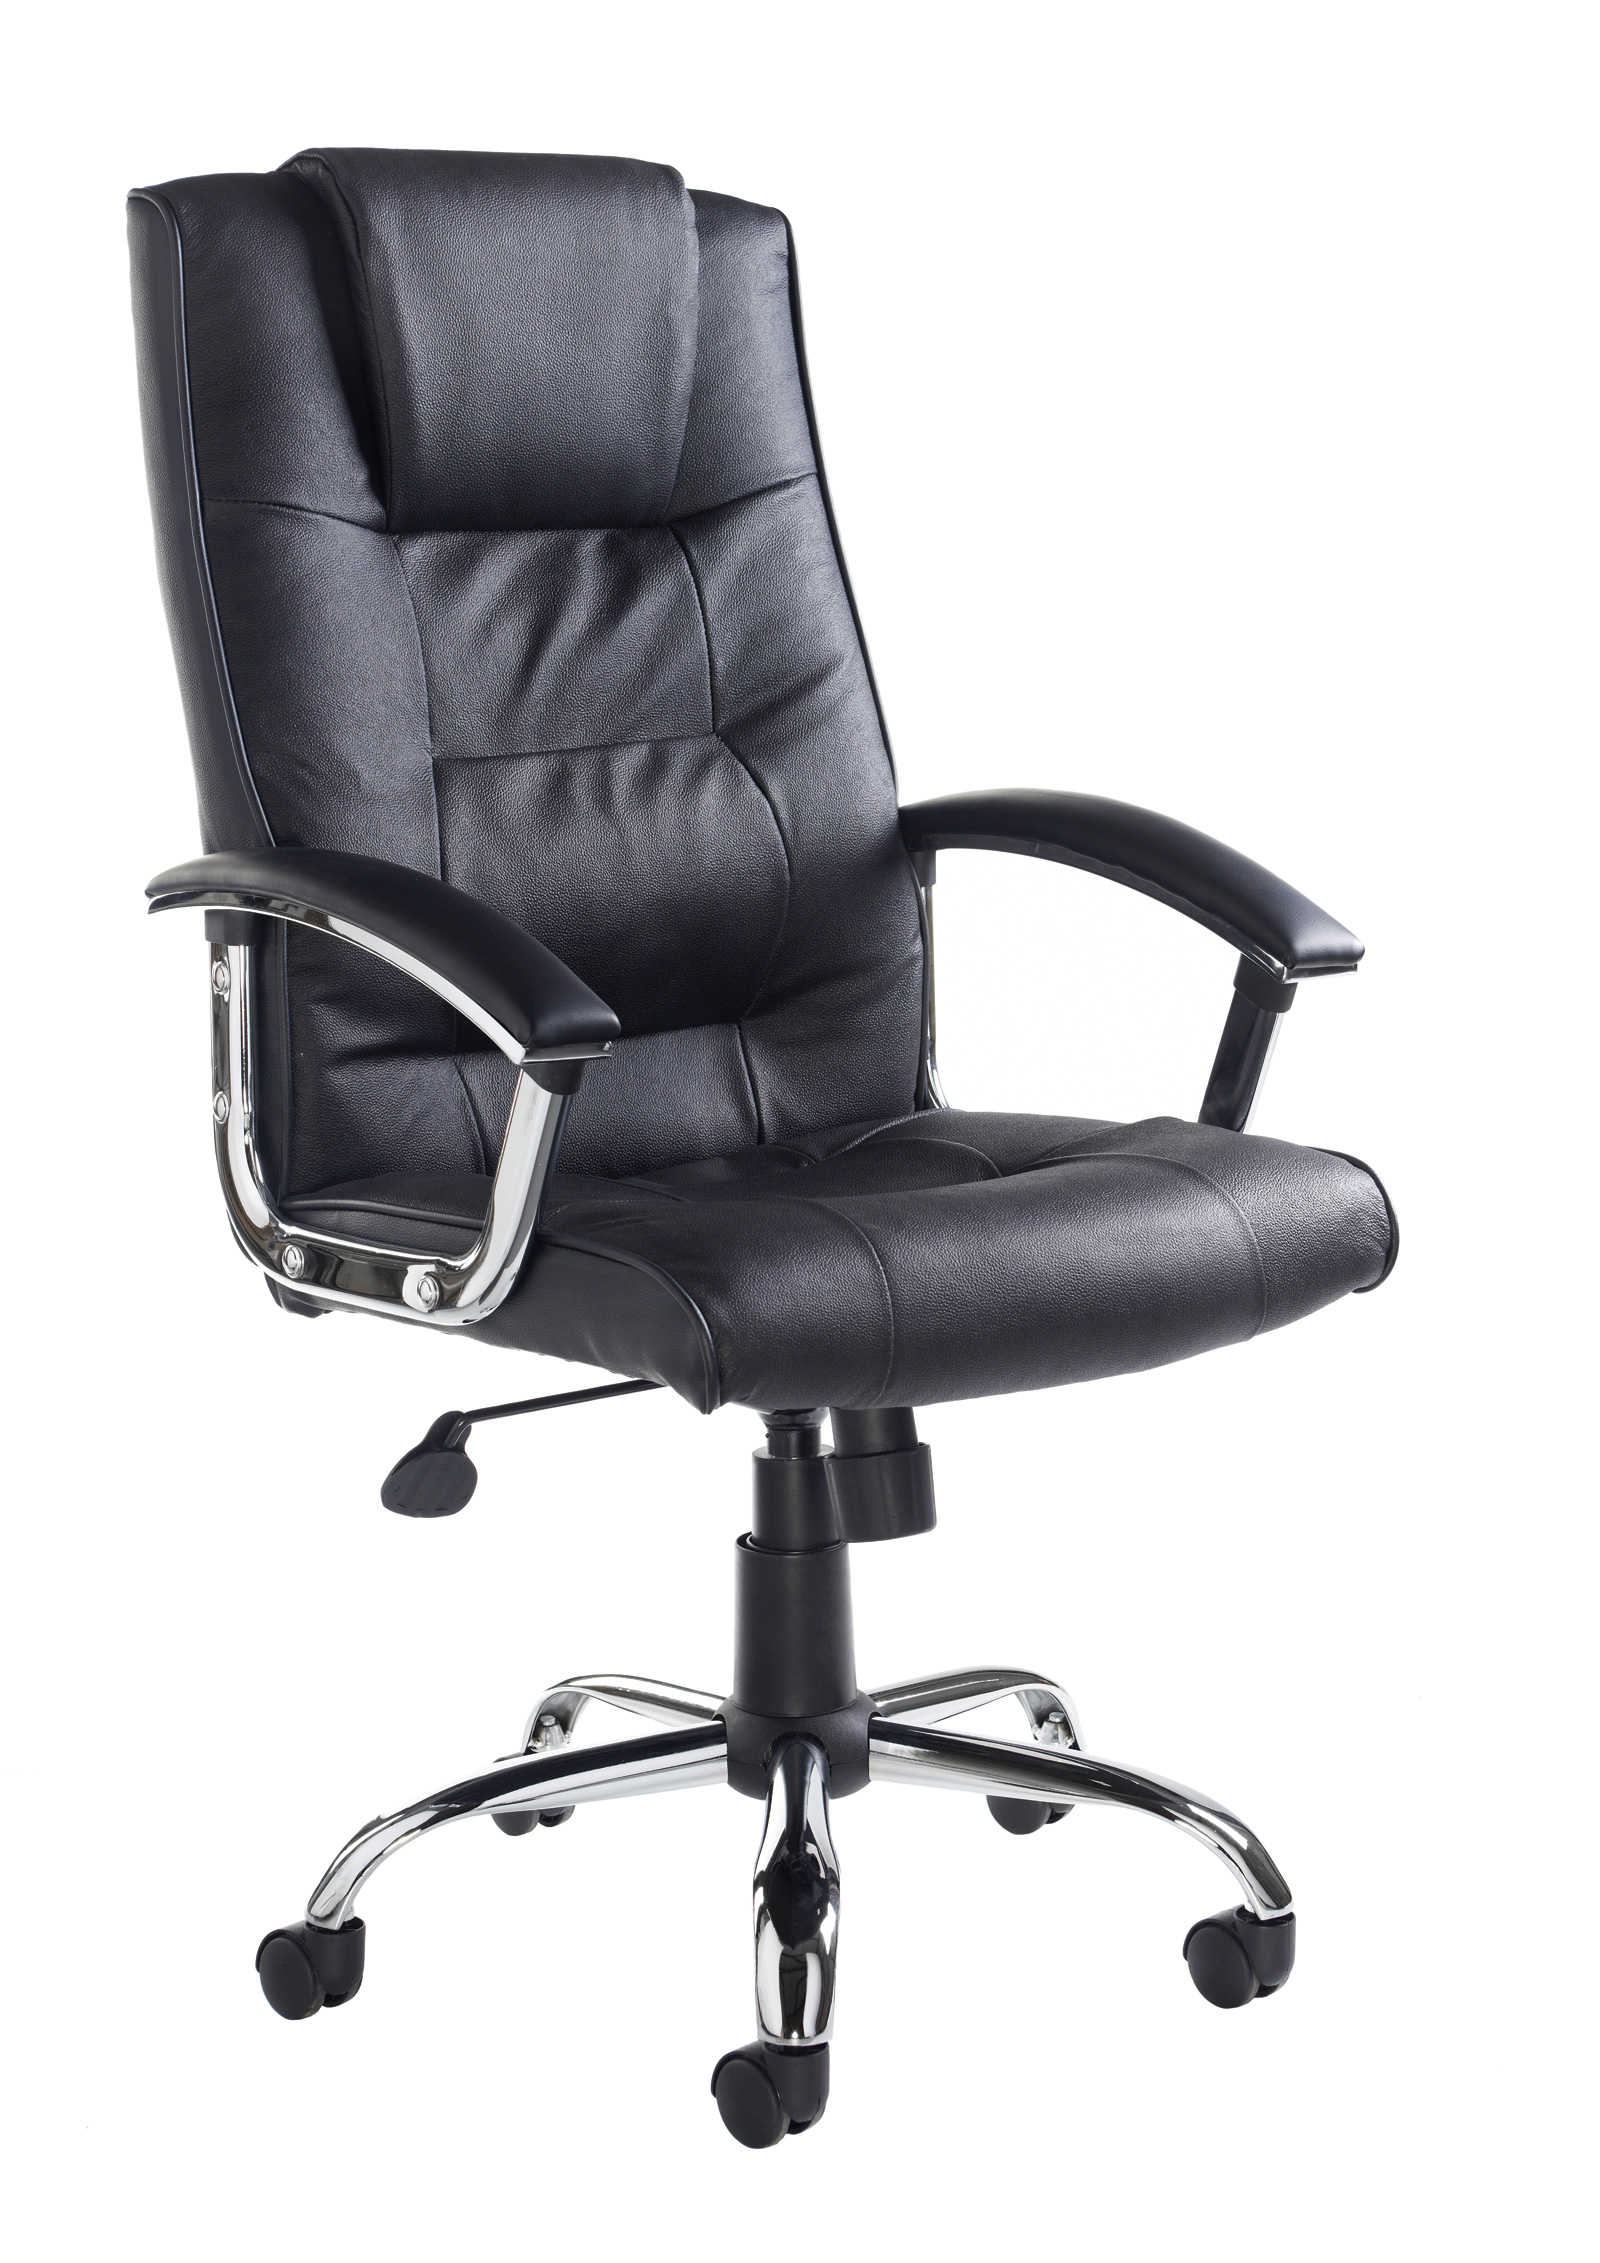 Next Day Somerset Executive High Back Chair Black Faux